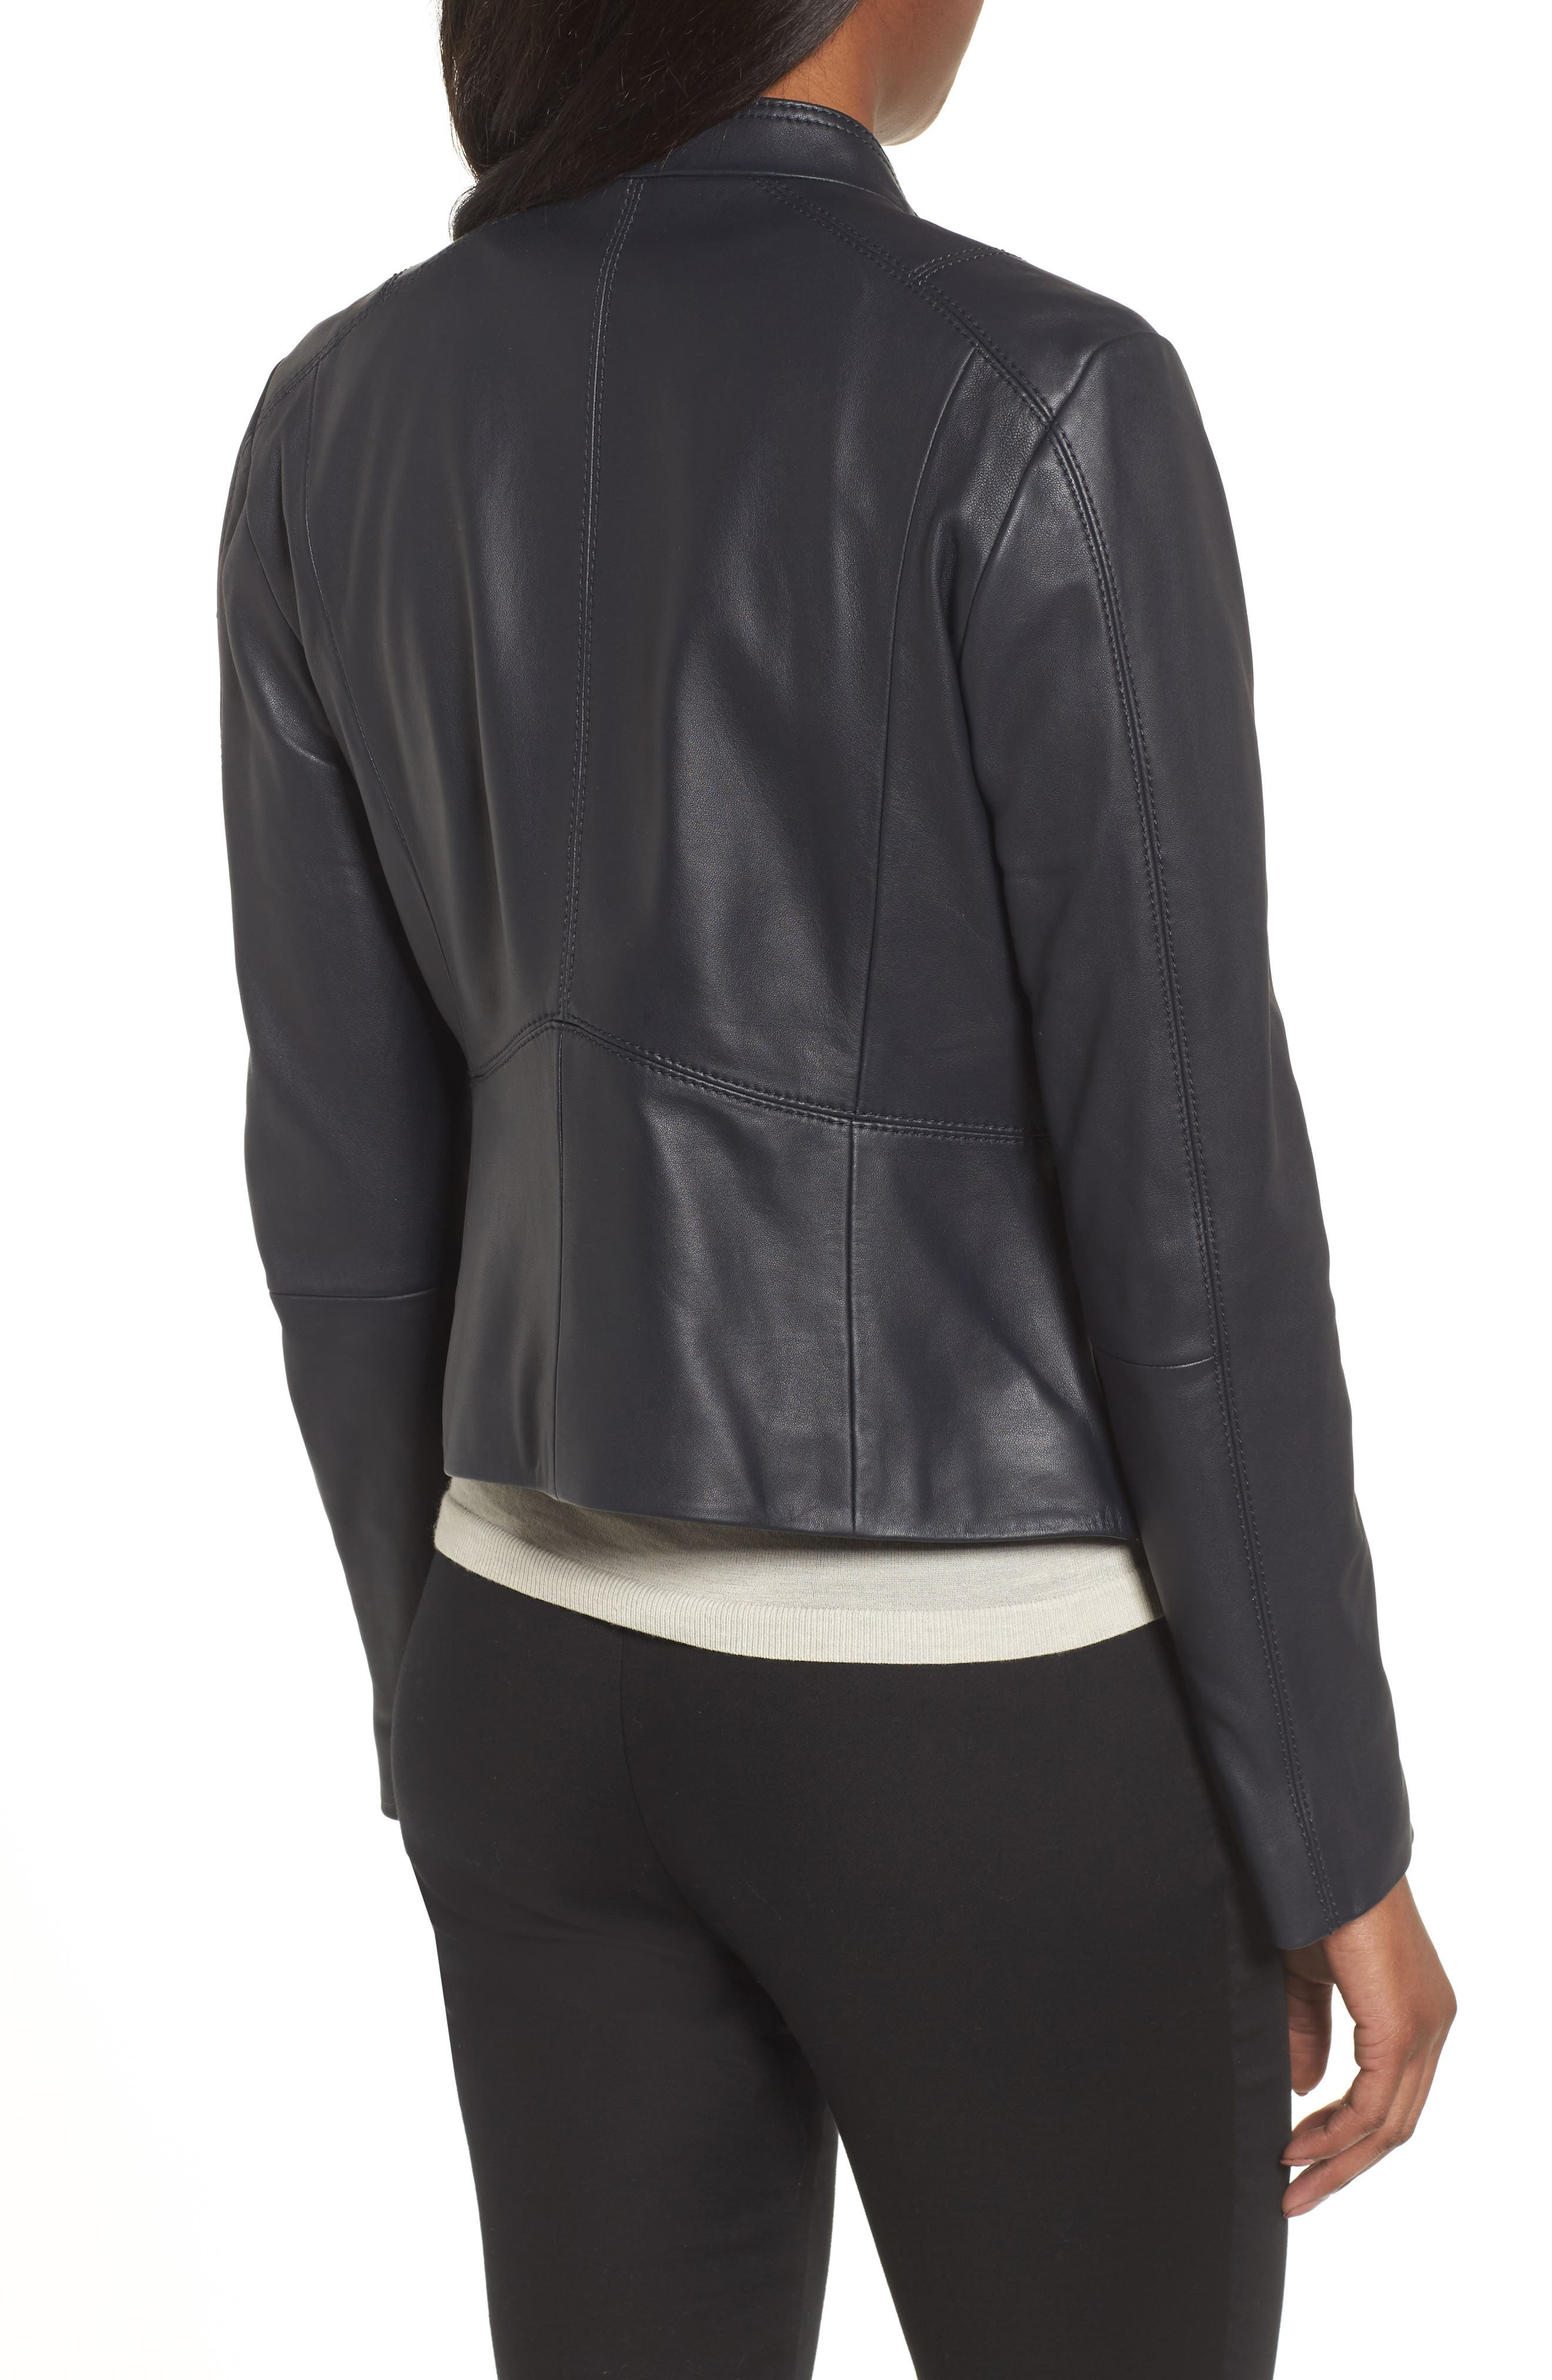 Sammonaie Leather Jacket,                             Alternate thumbnail 2, color,                             Navy